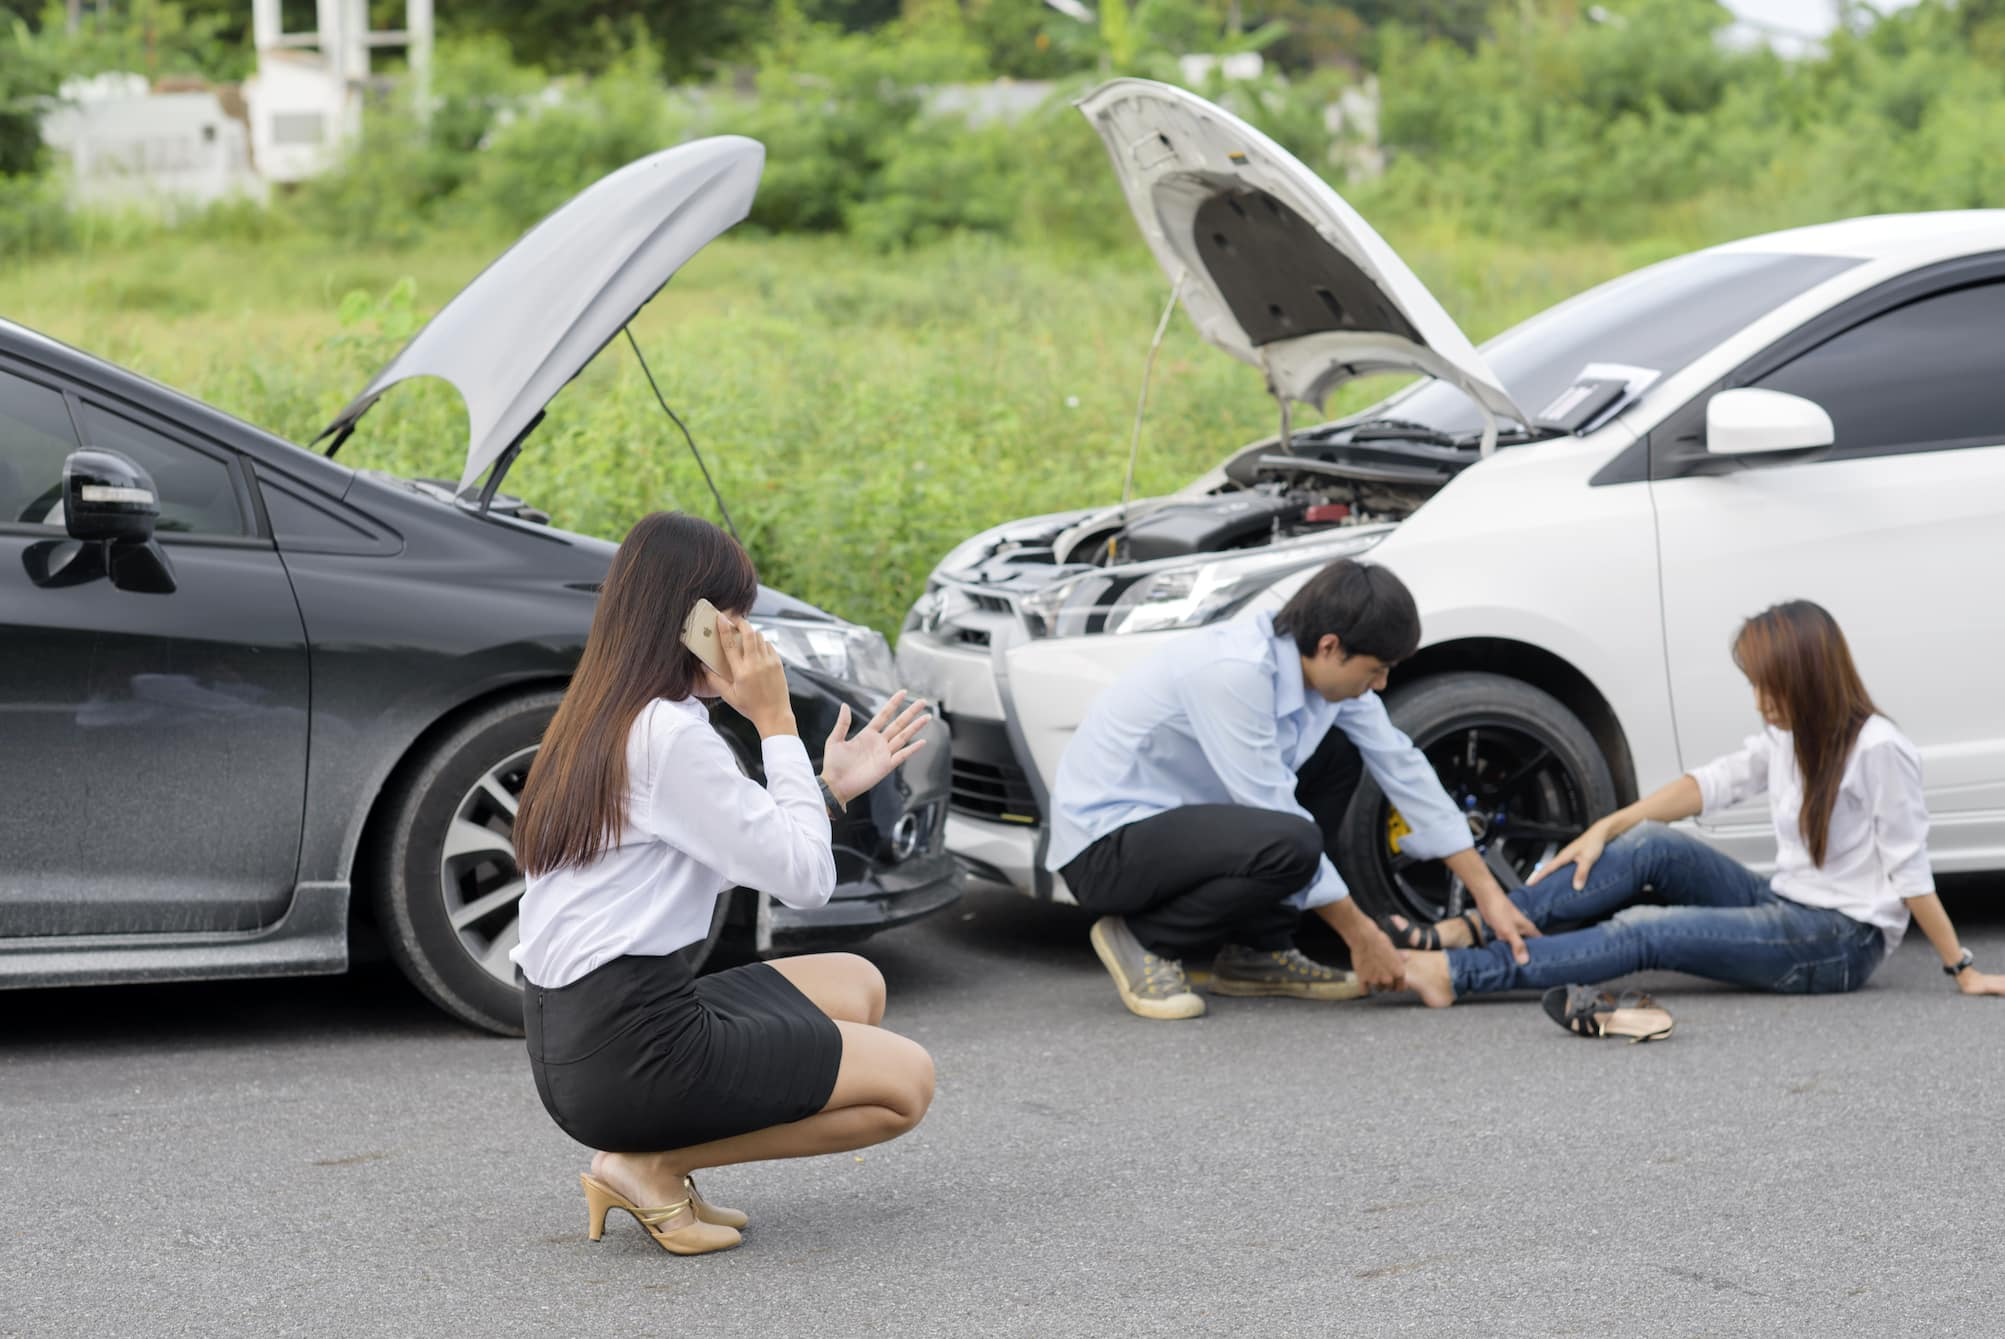 Injured in a Road Crash When Traveling by Uber: A Case Study